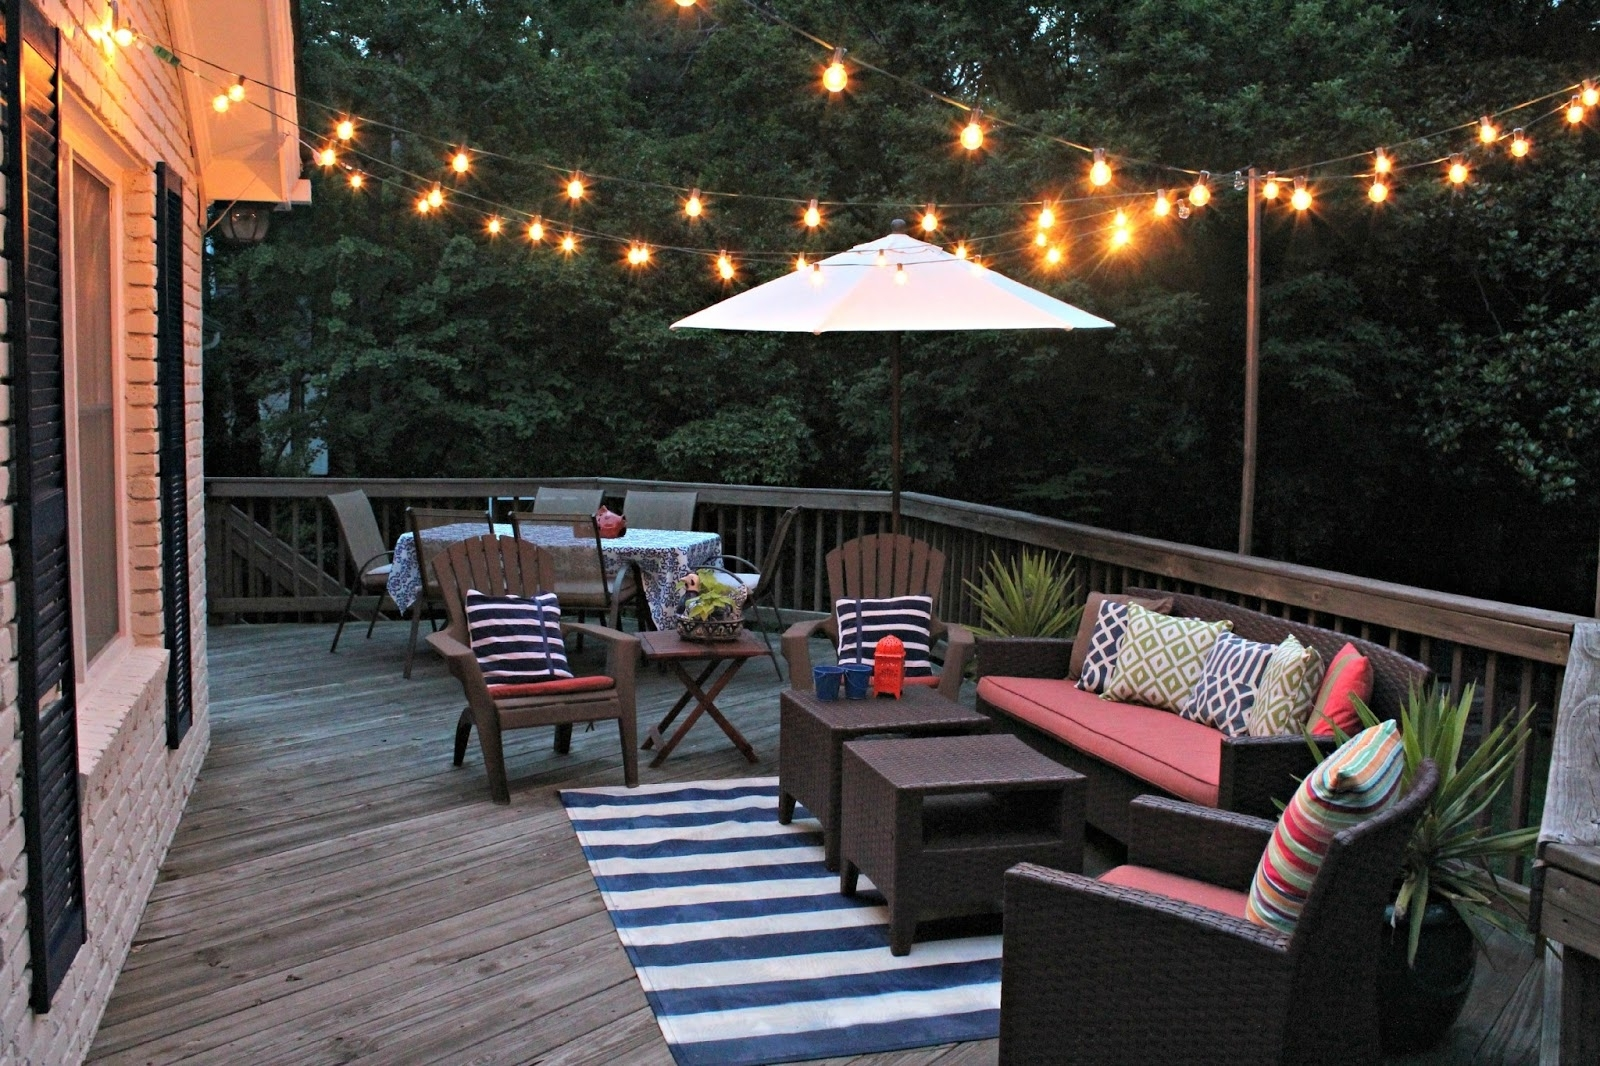 Fashionable Outdoor Hanging Deck Lights Pertaining To Outdoor Deck String Lighting Collection Including Ideas Led Lights (View 5 of 20)